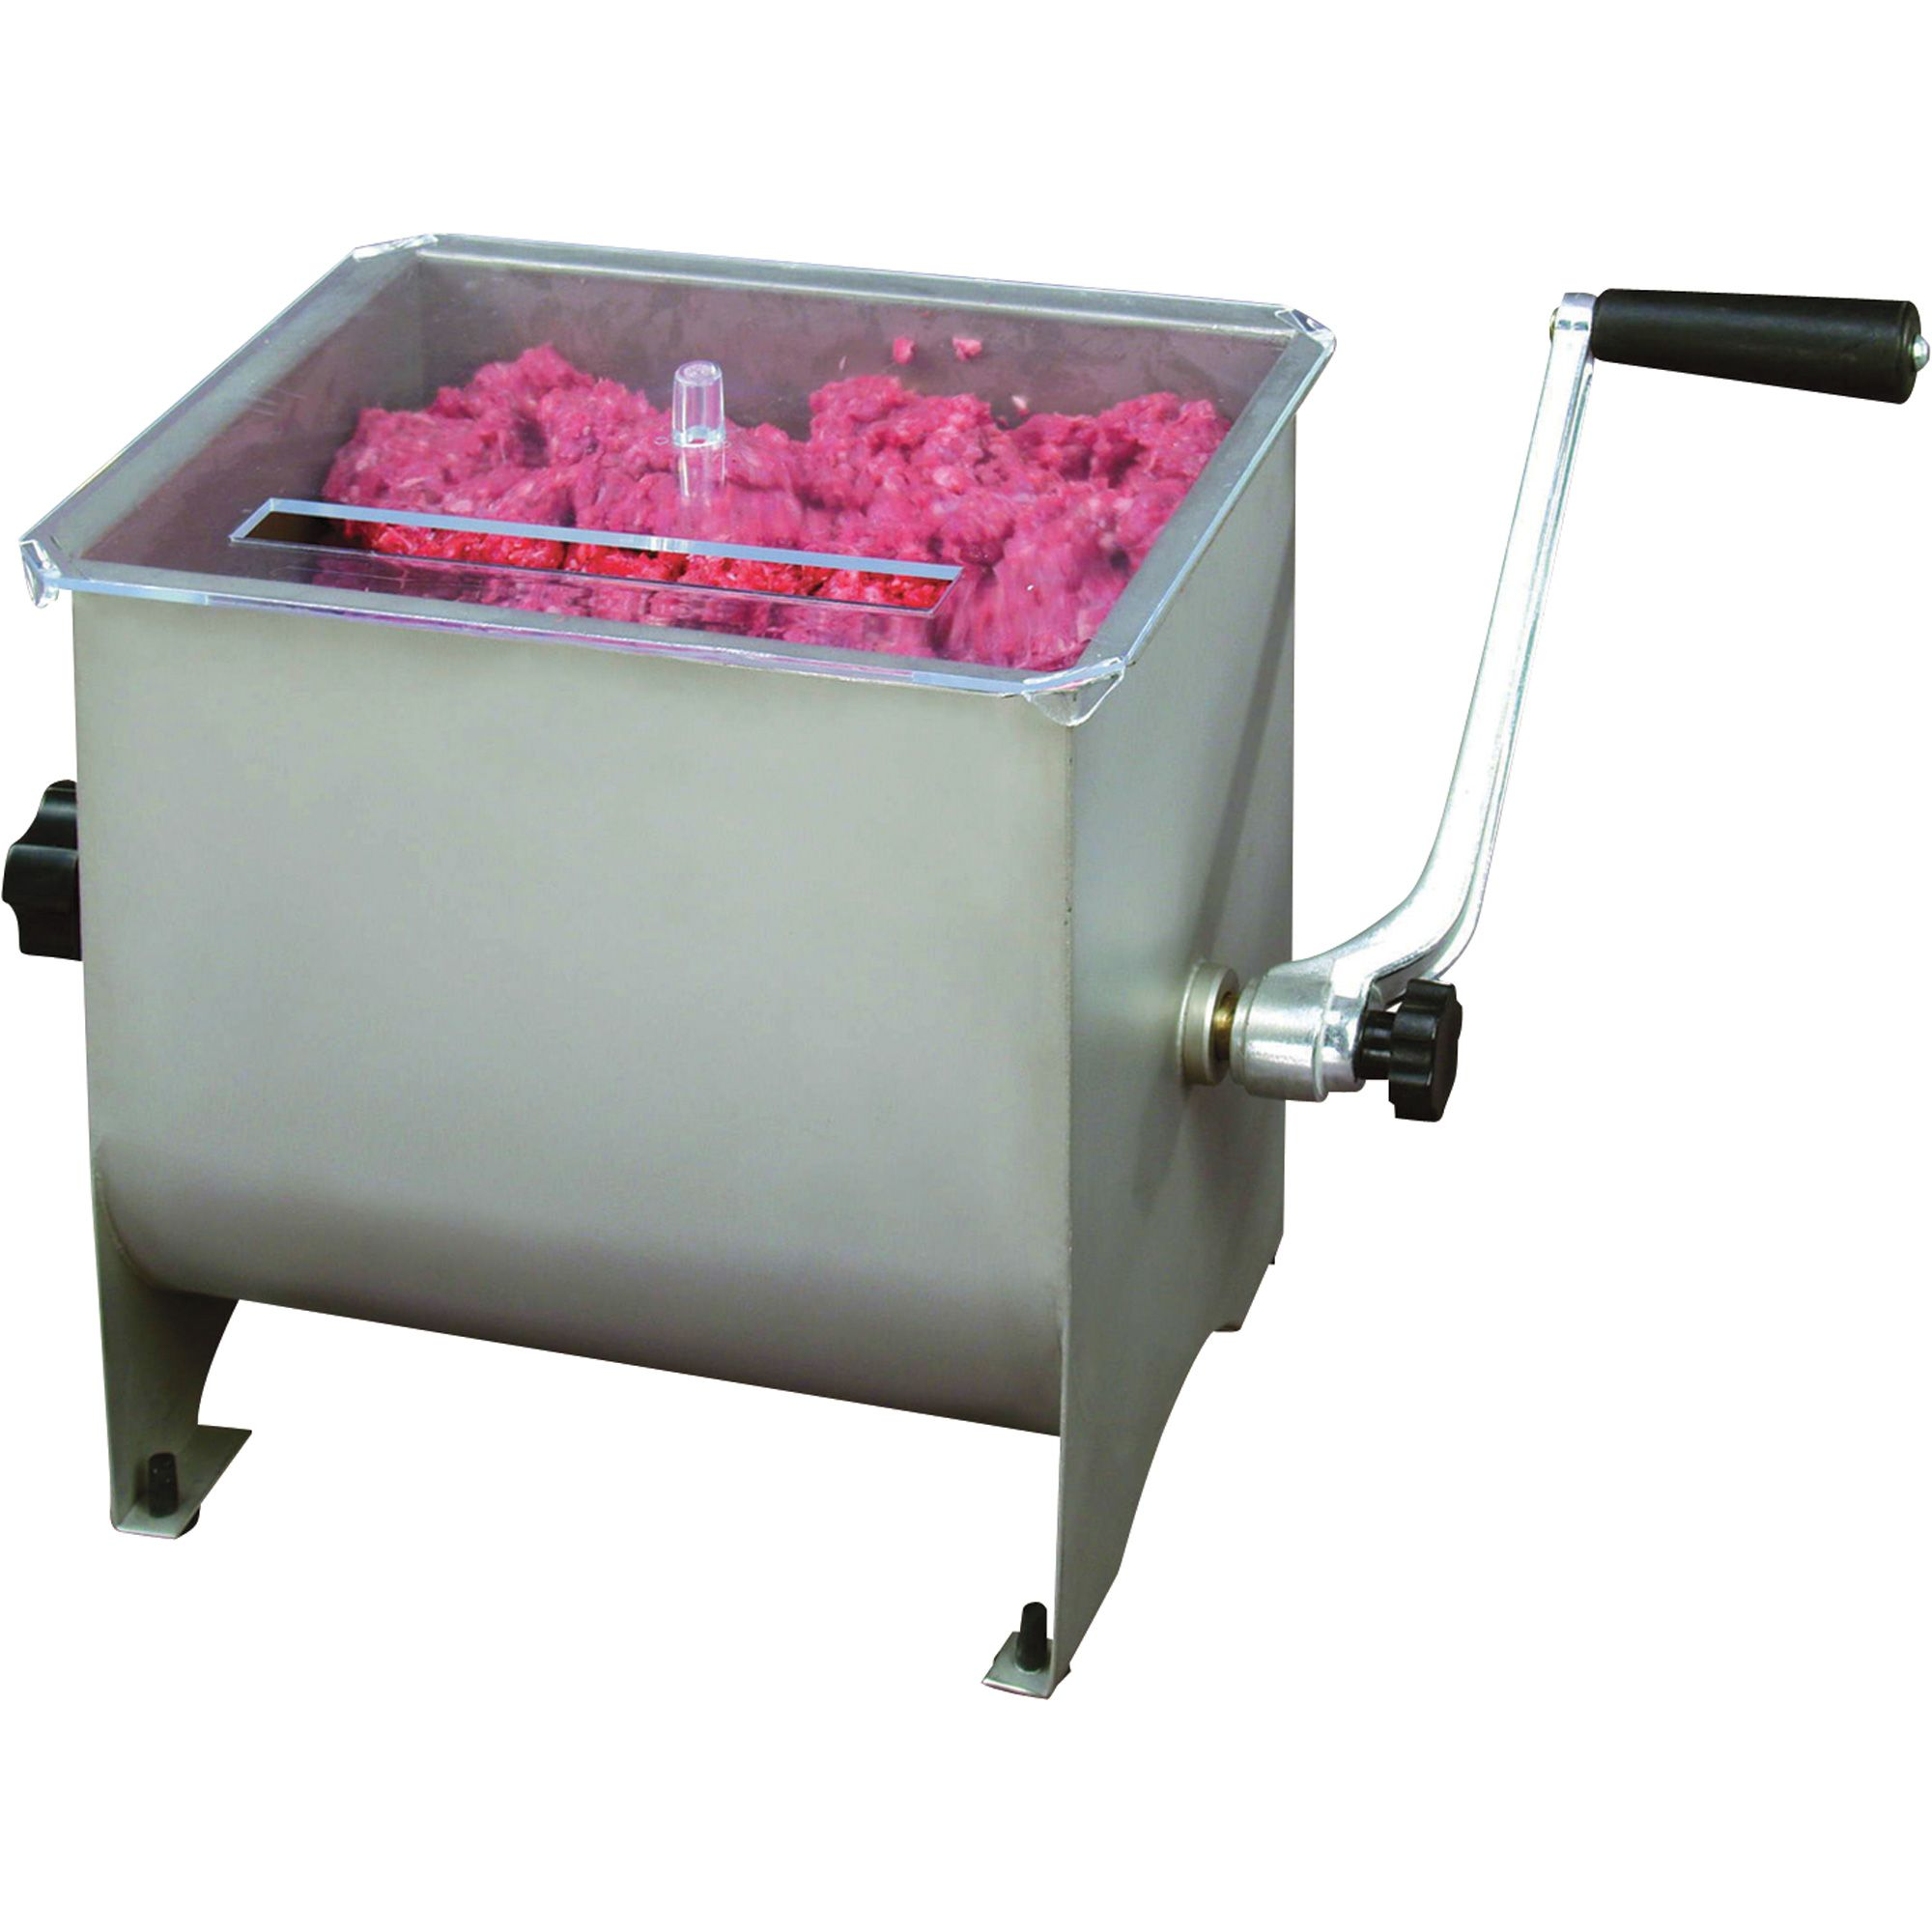 Kitchener 4.2-Gallon Stainless Steel Meat Mixer   Mixers Tenderizers ...